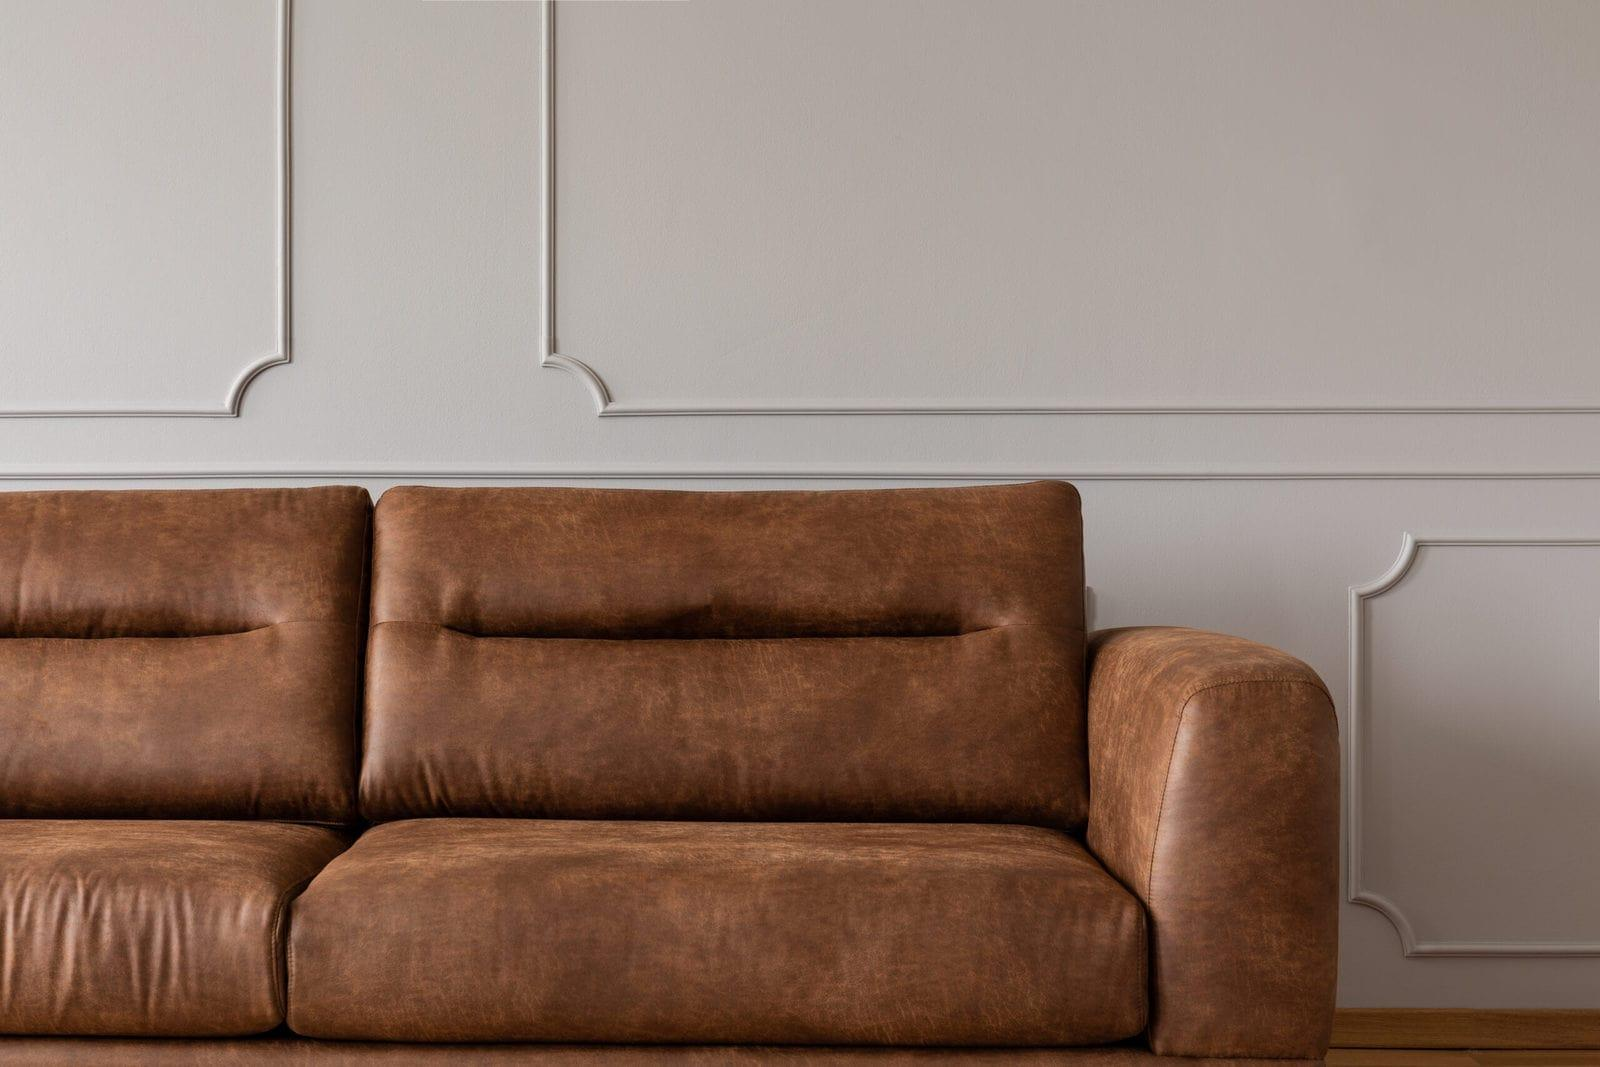 A Leather Sofa In An Elegant Living Room (3)